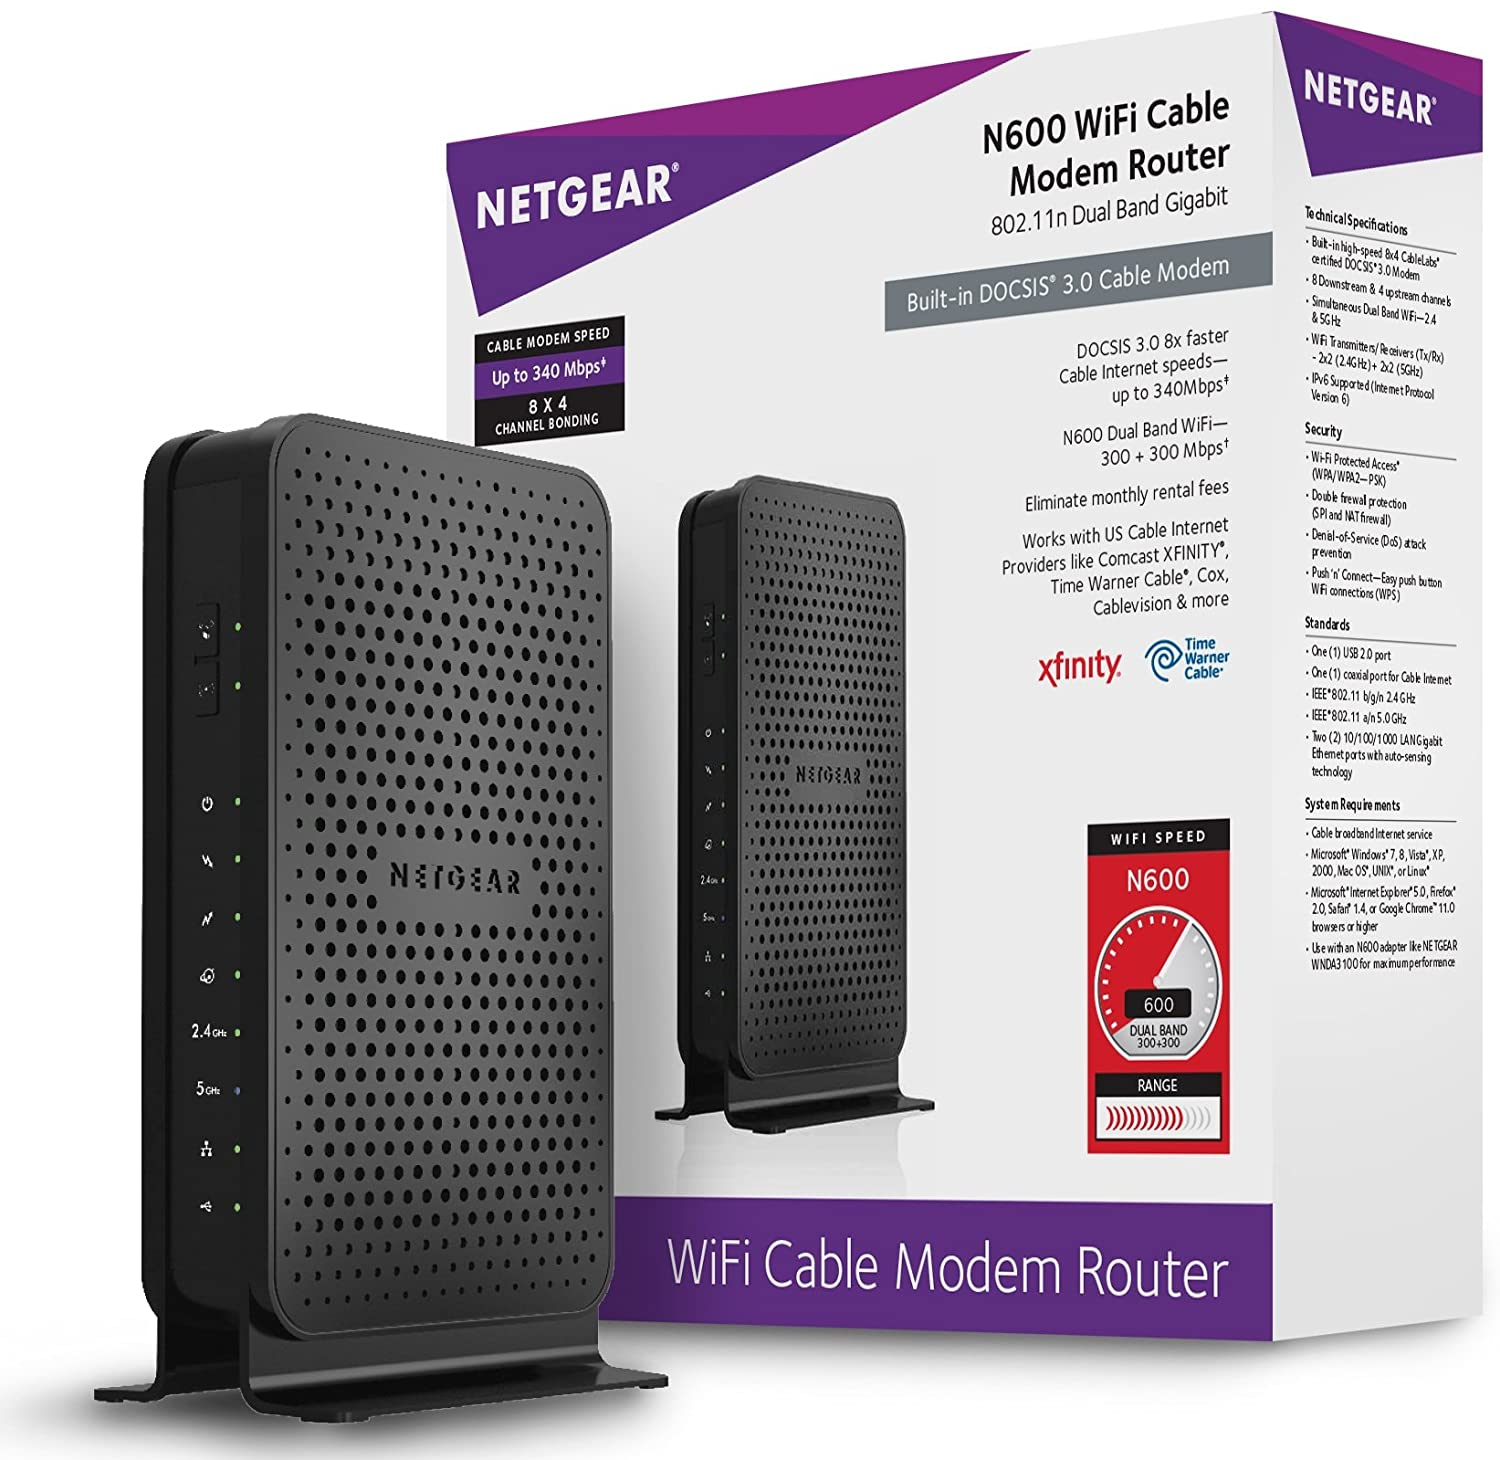 Netgear N600 8x4 Wifi Docsis 30 Cable Modem Router Home Wiring Diagram Get Free Image About C3700 Certified For Xfinity From Comcast Spectrum Cox More Computers